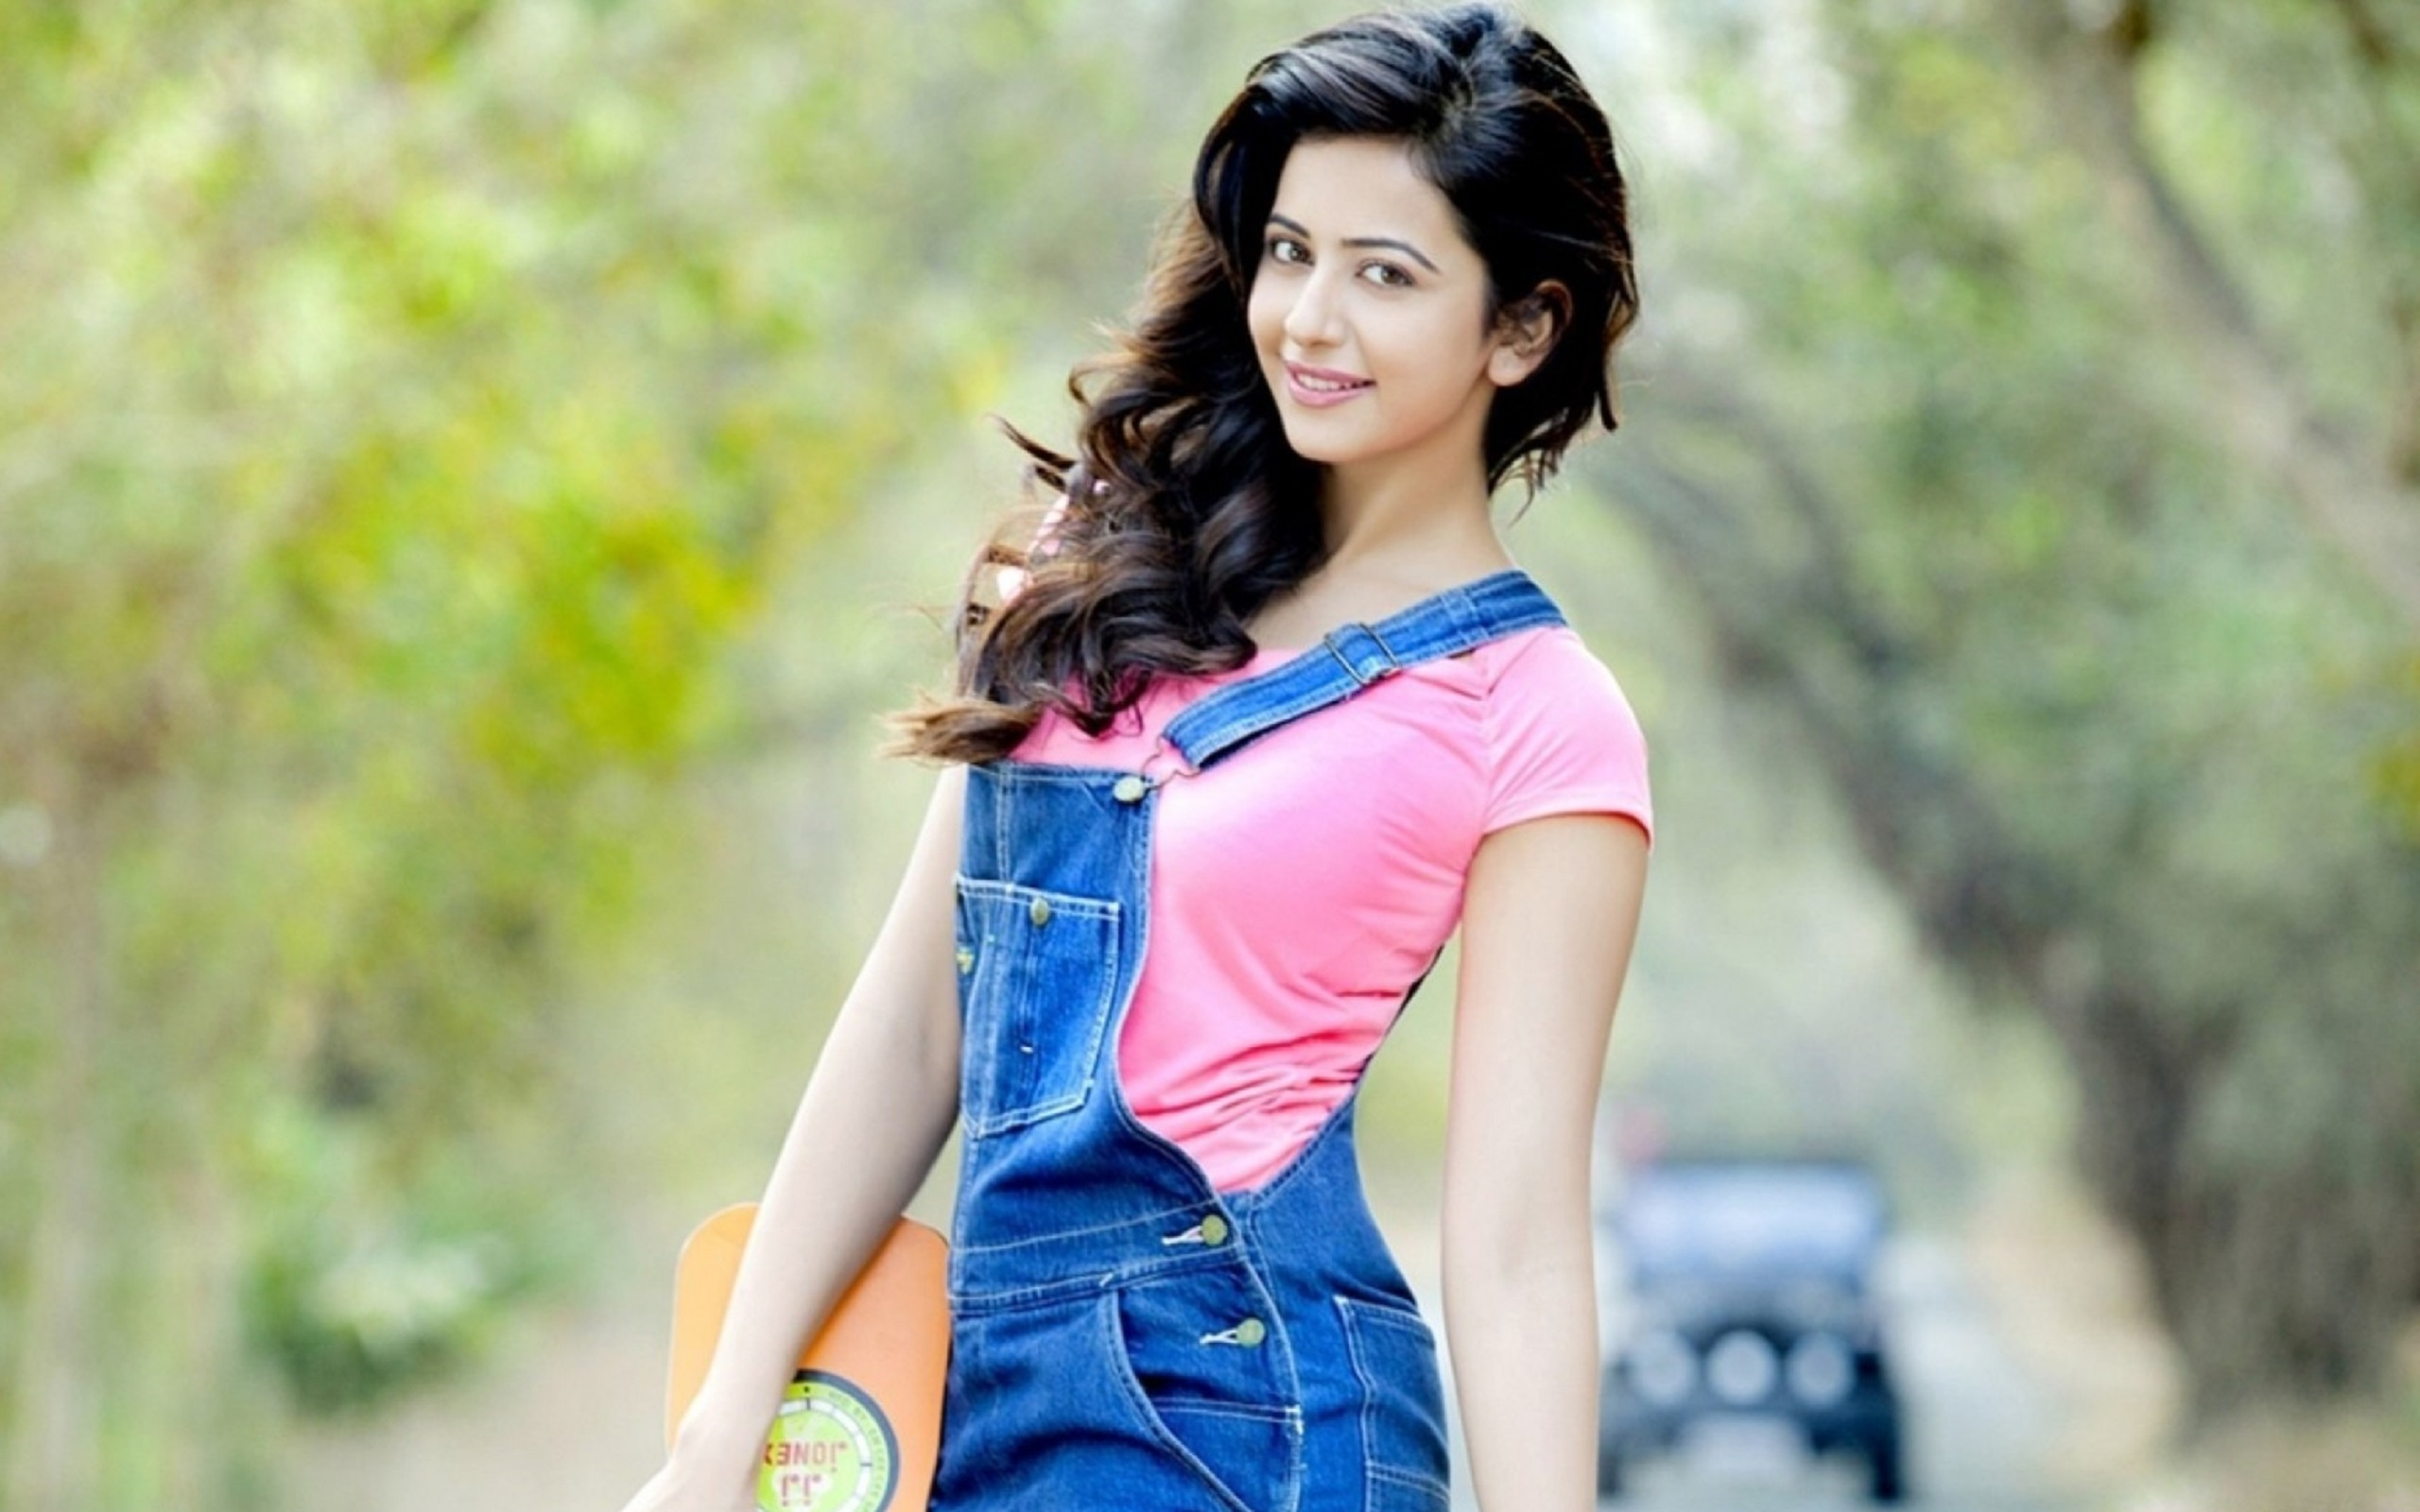 amazing rakul preet singh smile look free desktop mobile background hd images